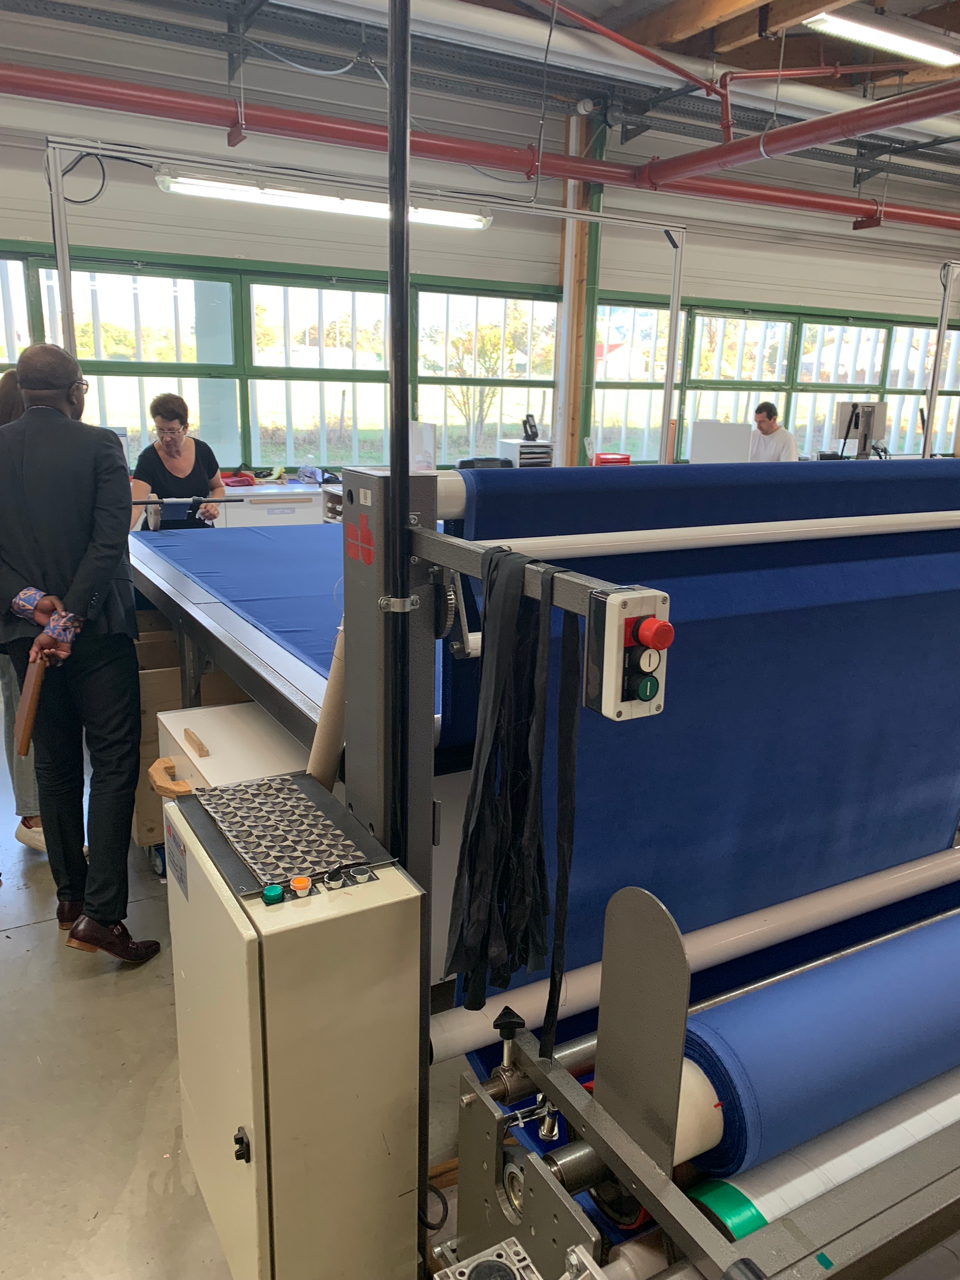 Each bolt of fabric is unrolled and hand-inspected